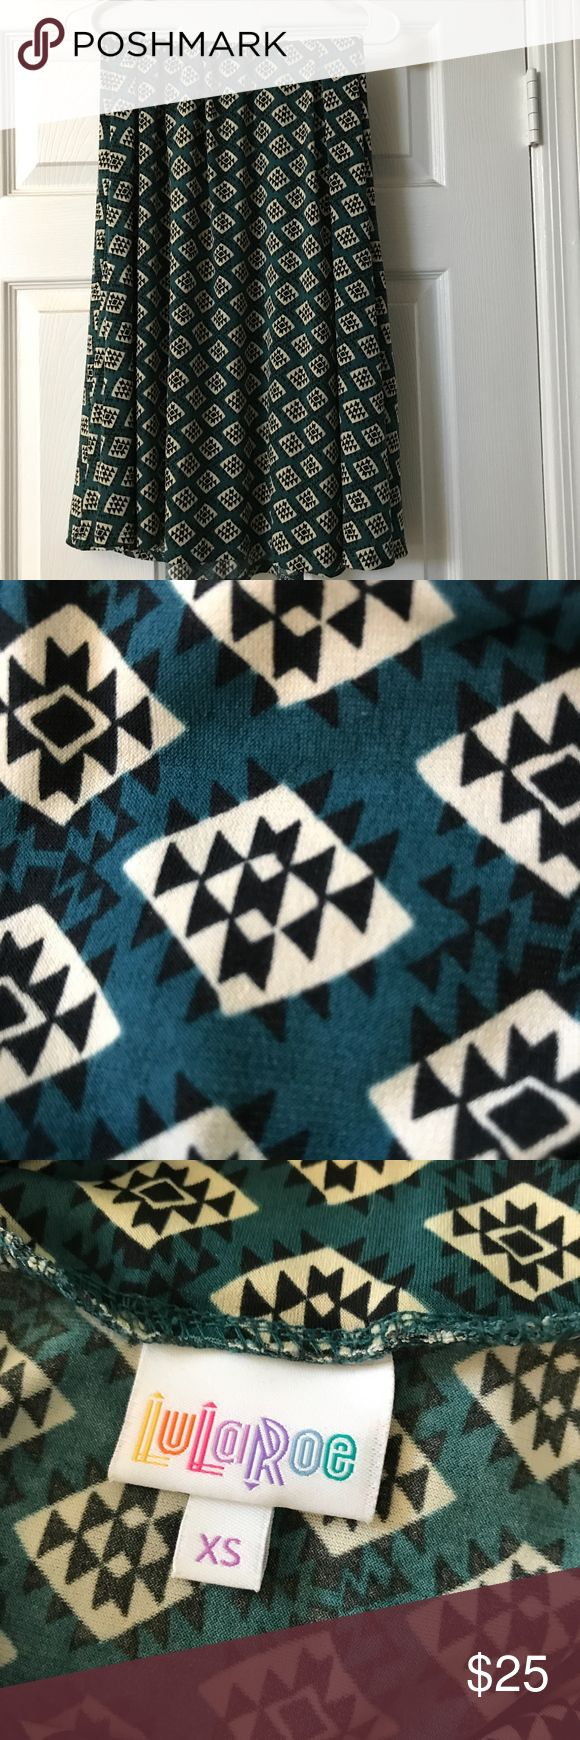 LuLaRoe Maxi LuLaRoe Maxi - dark teal with white and black patterned design.  Used but excellent condiiton. LuLaRoe Skirts